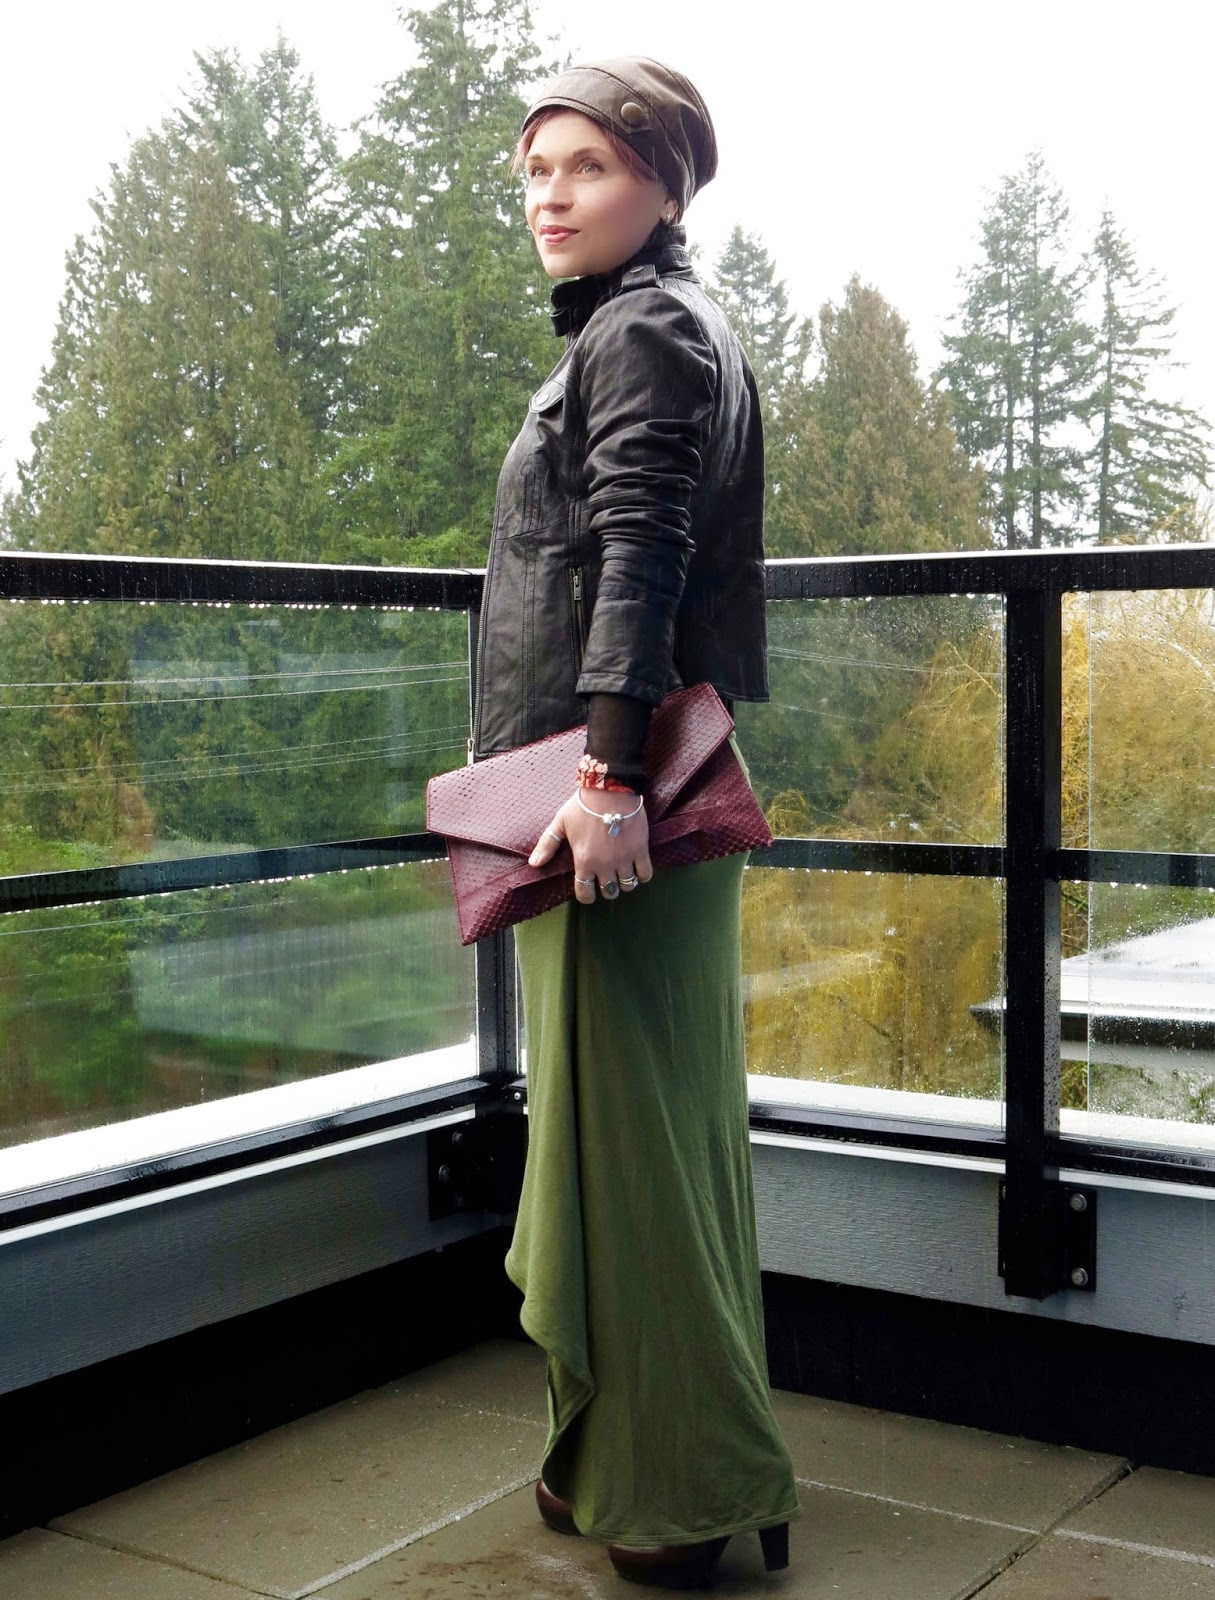 styling a high-low dress with a sheer floral top, moto jacket, leather beanie, and platform booties